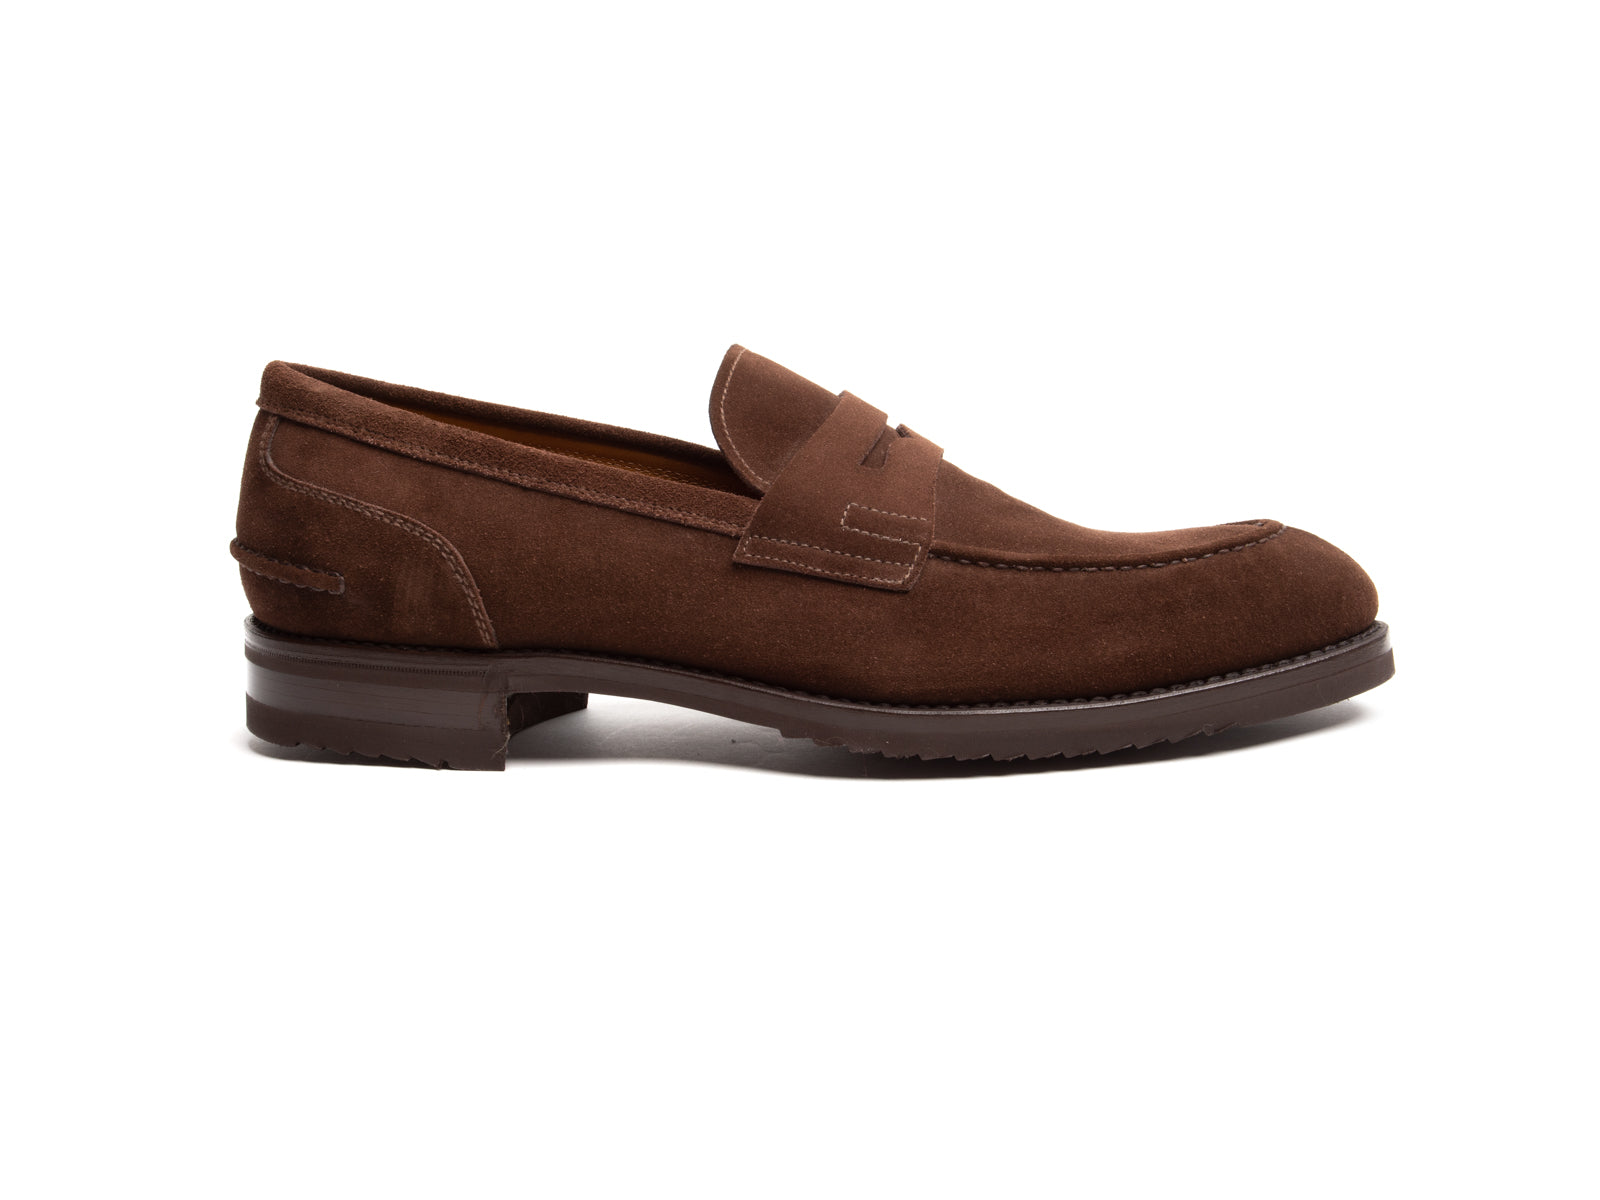 Water Resistant Suede Penny Loafer with Vibram Sole